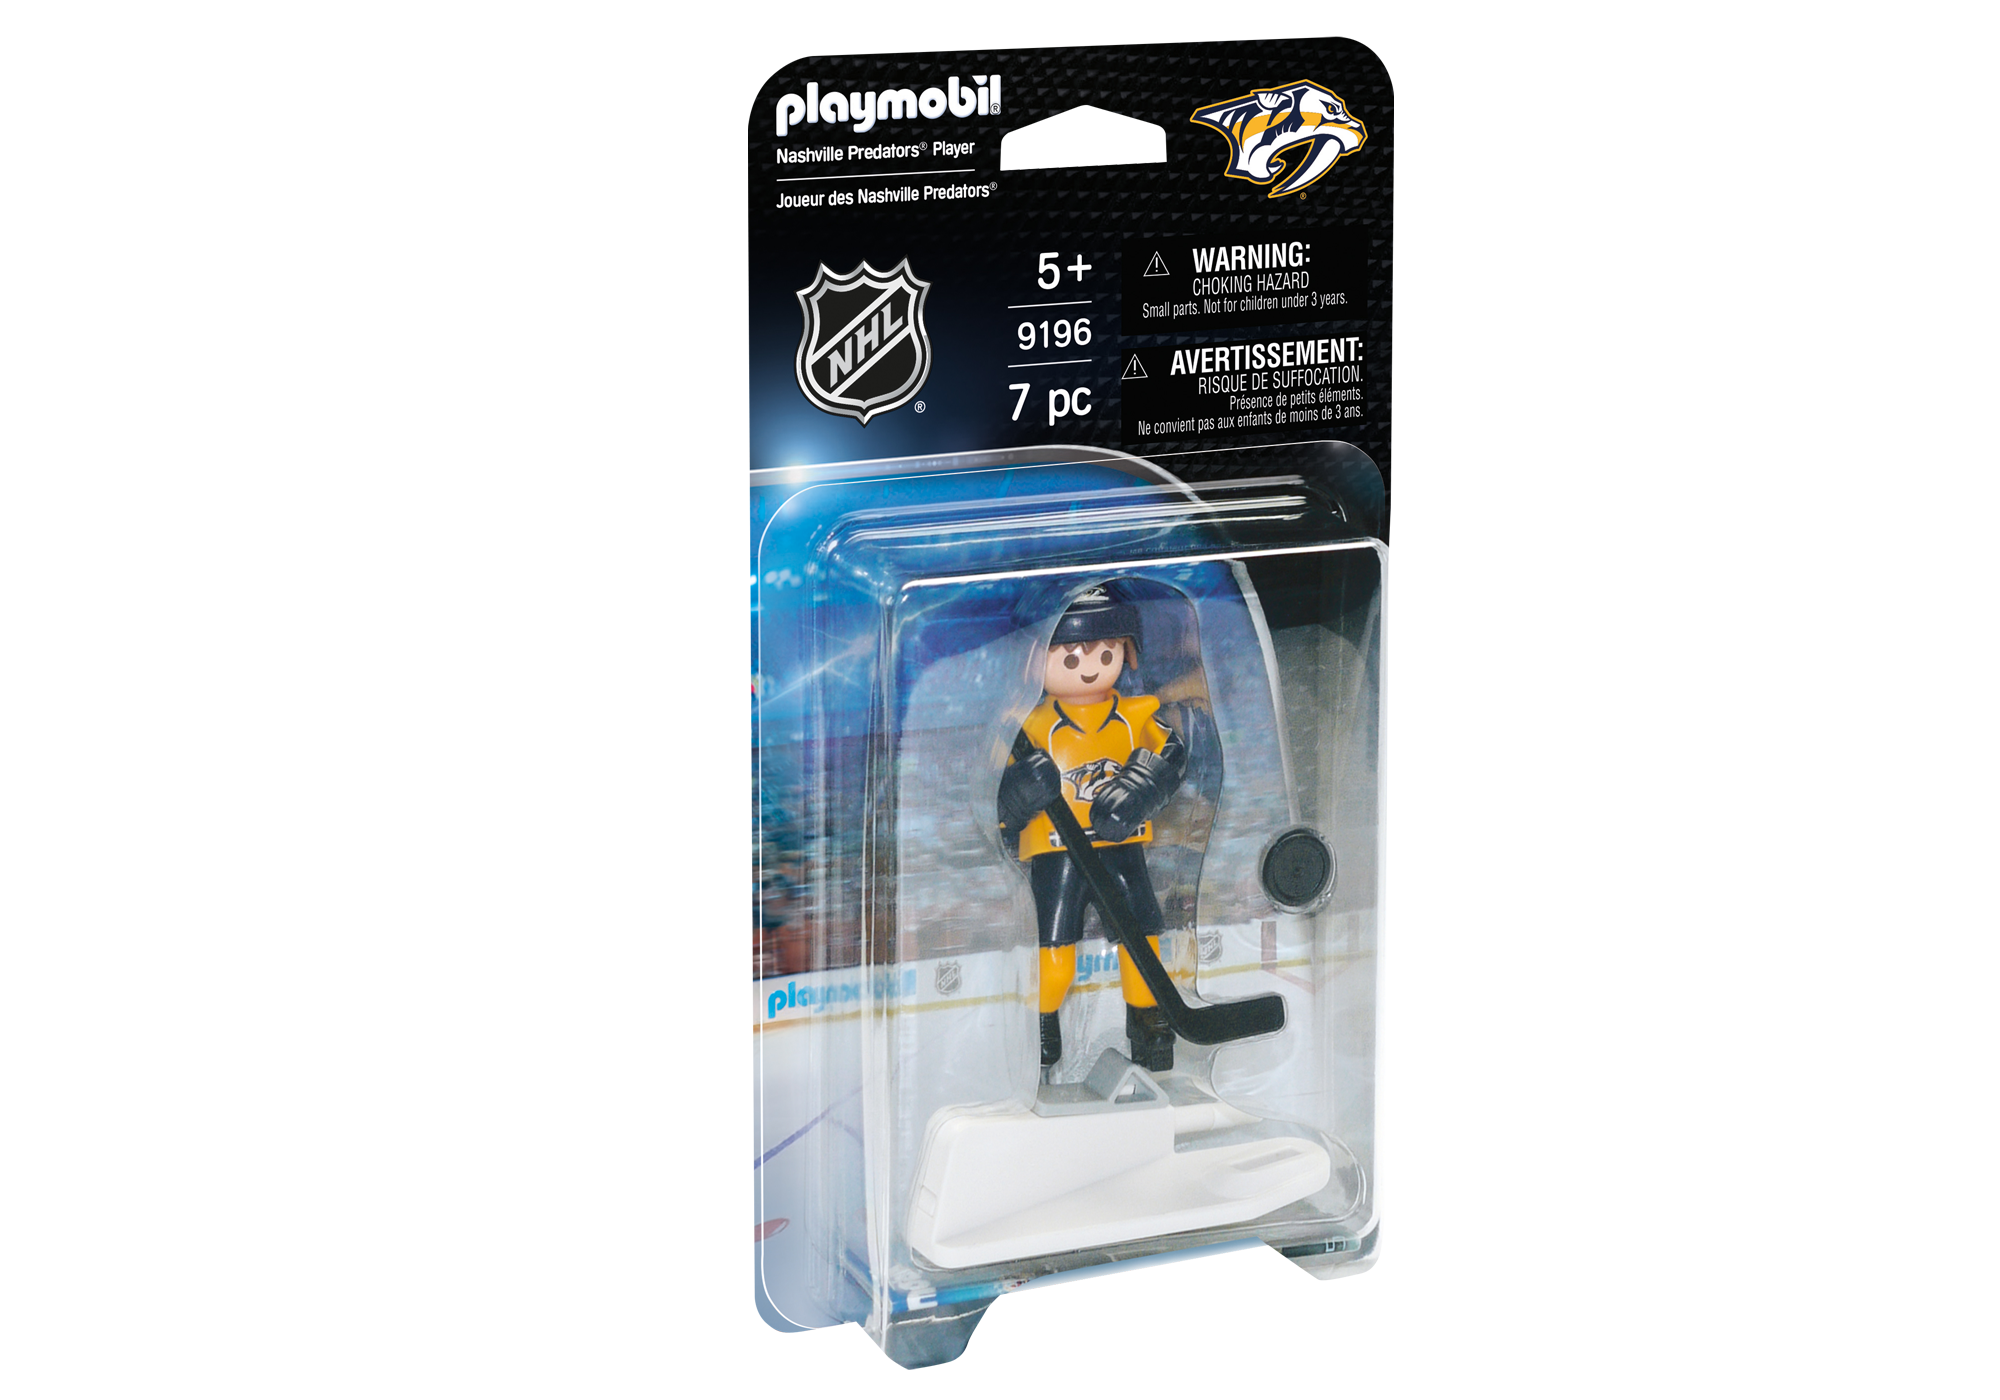 http://media.playmobil.com/i/playmobil/9196_product_box_front/NHL™ Nashville Predators™ Player